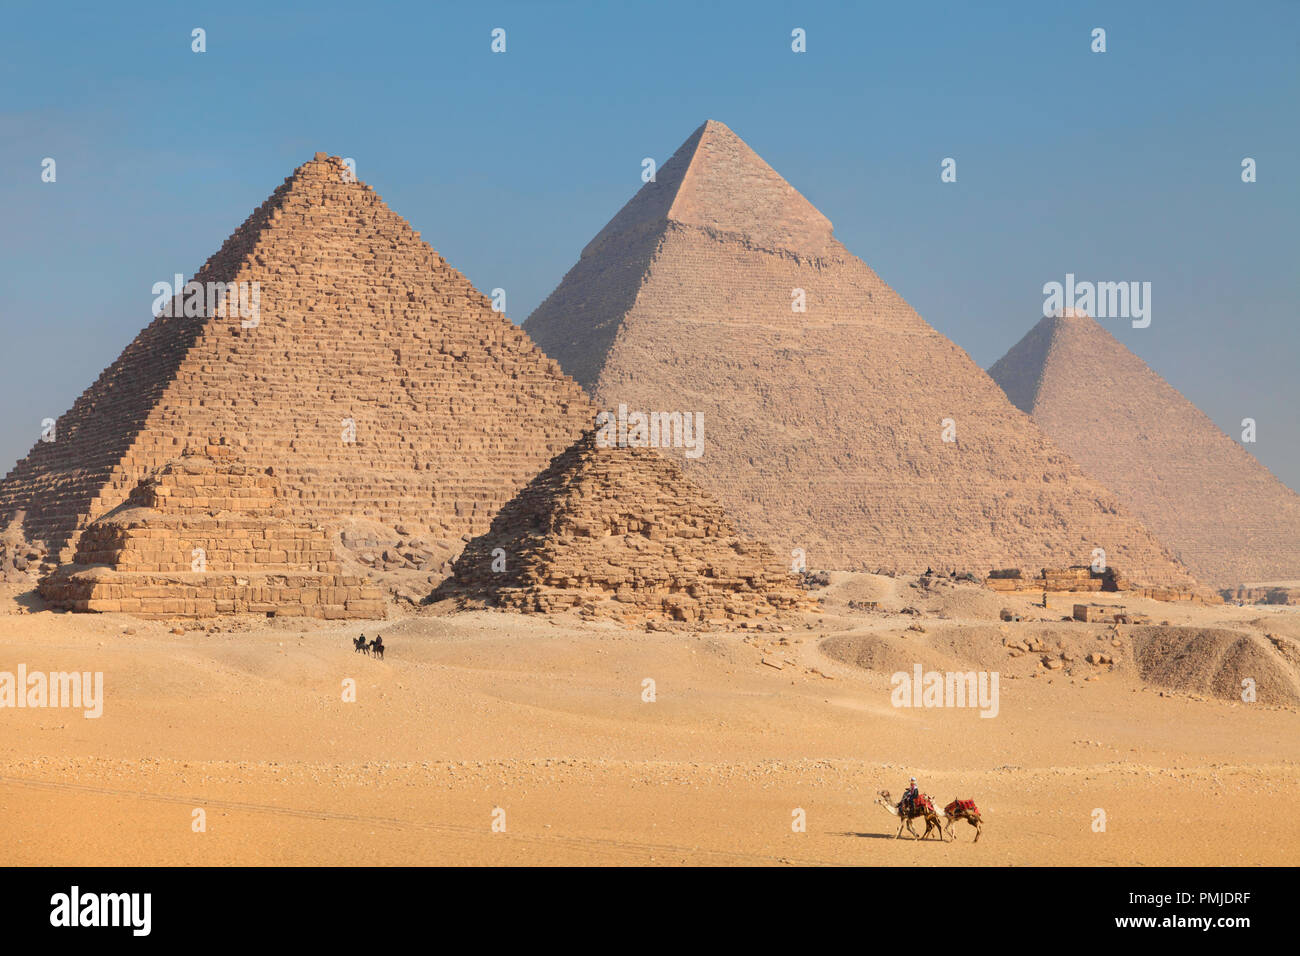 Camels walks through the desert sand on Giza Plateau near the Great Pyramids of Egypt - Stock Image